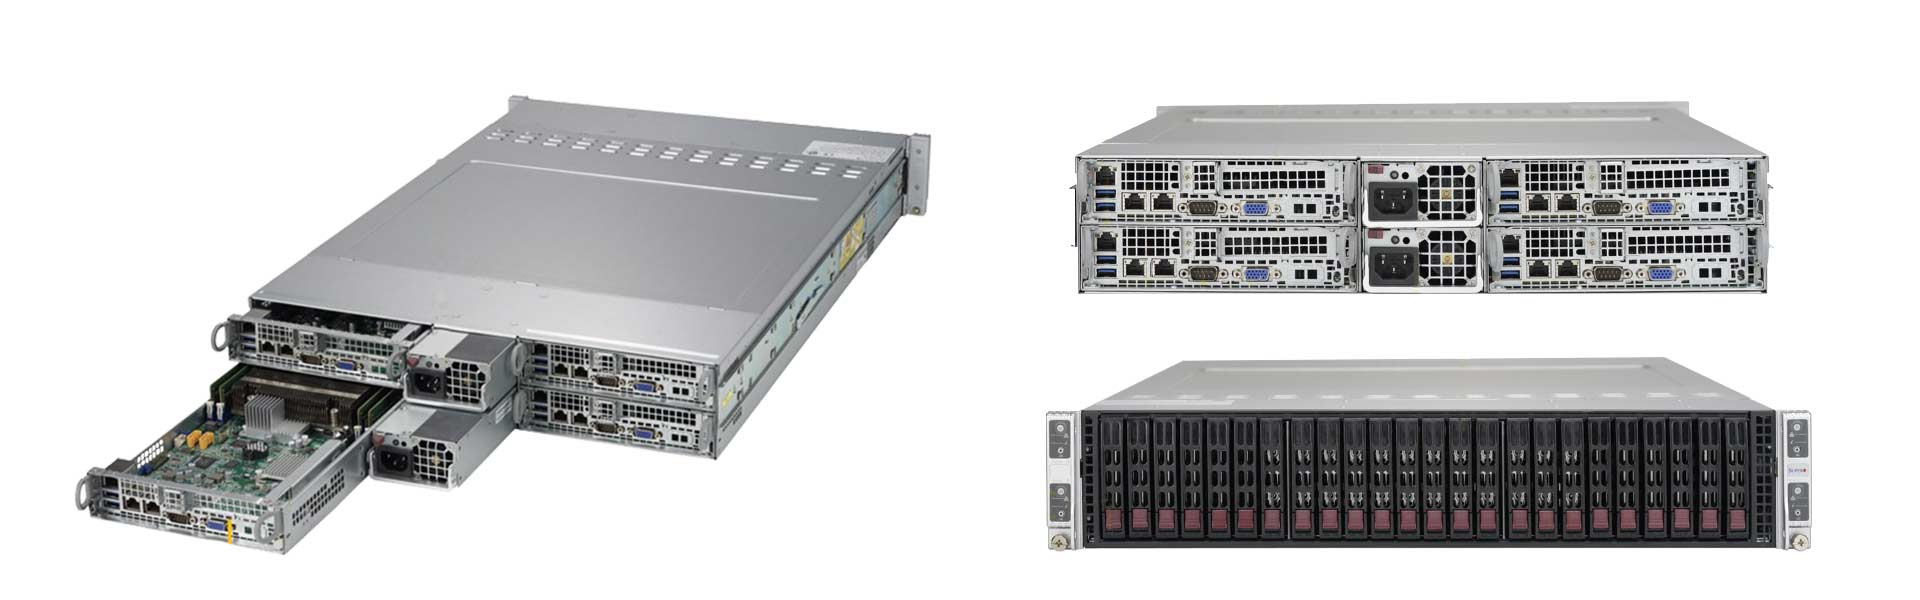 Servers & Appliances - vSWITCH Pro